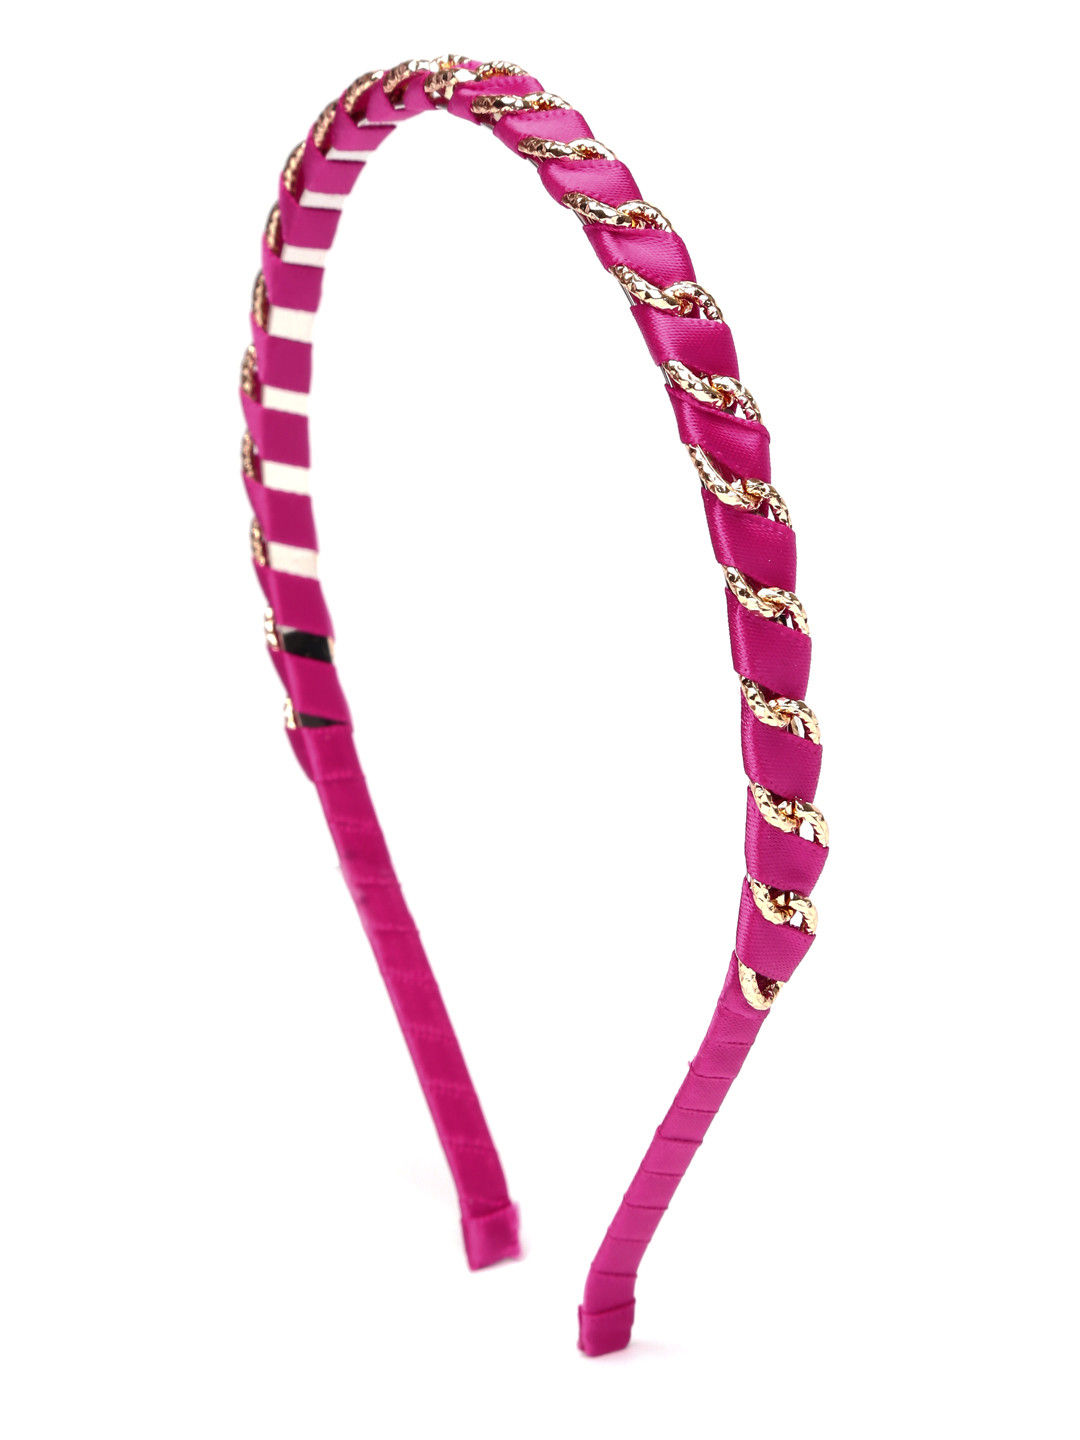 Toniq Fuschia Wired Hair Band